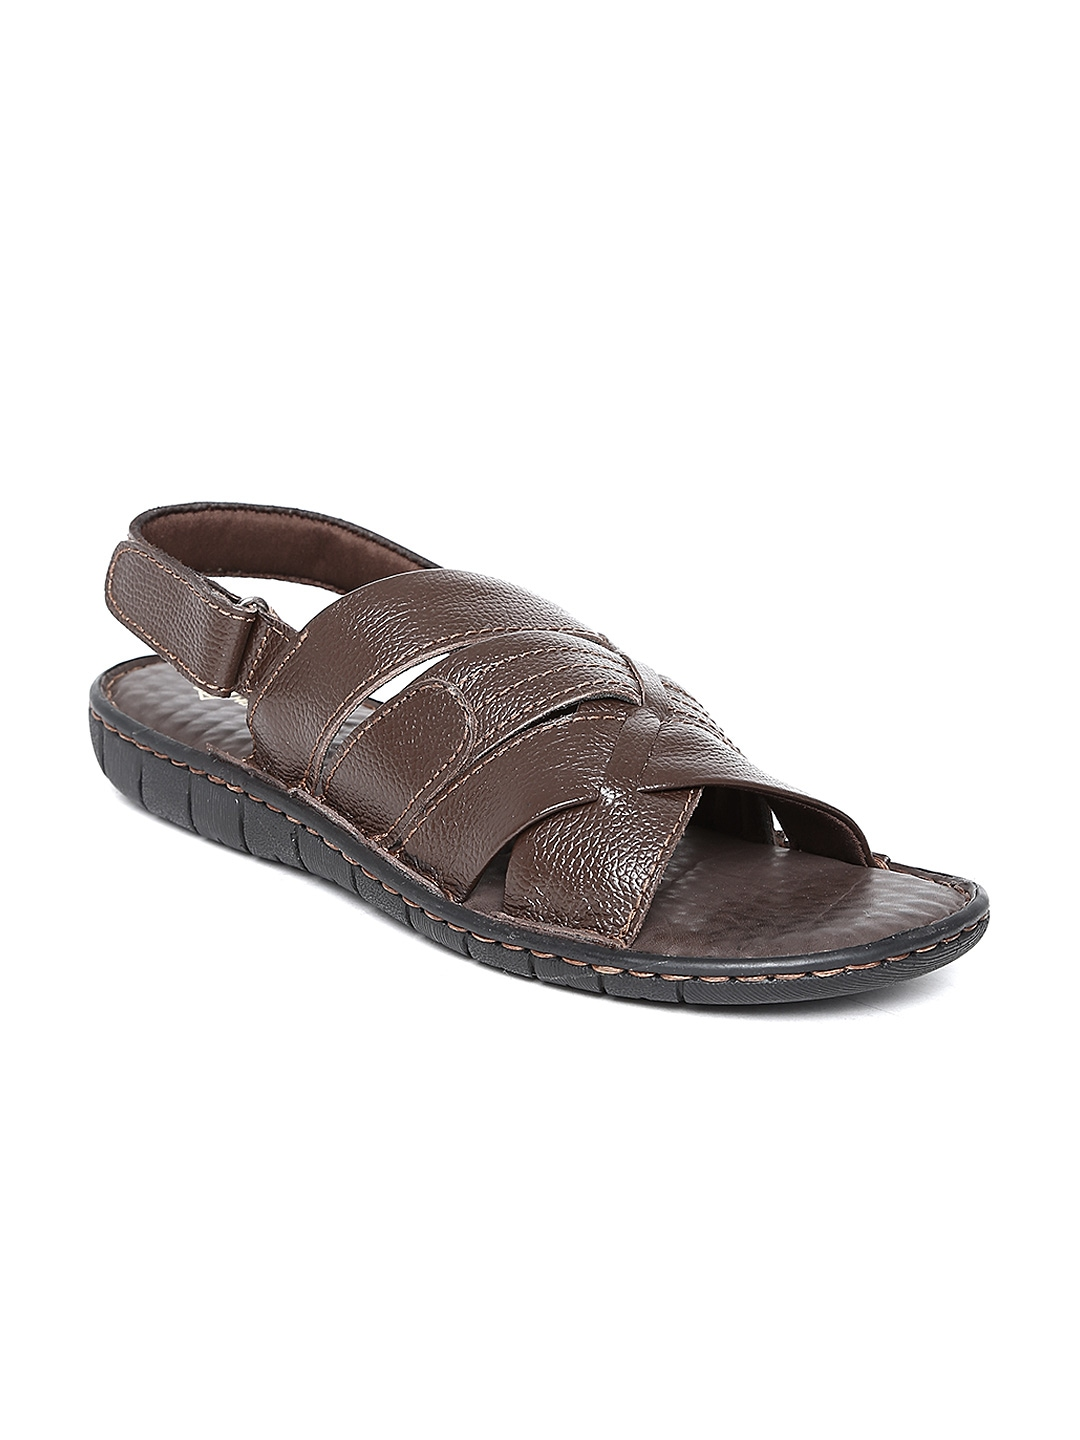 Find hush puppy shoes from a vast selection of Shoes for Men. Get great deals on eBay! Skip to main content. eBay: Hush Puppies Mall Walker Casual Shoes - Men's M, Antique Brown See more like this. Hush Puppies Mall Walker Men's Shoes New Stock. Brand New. $ Buy It .